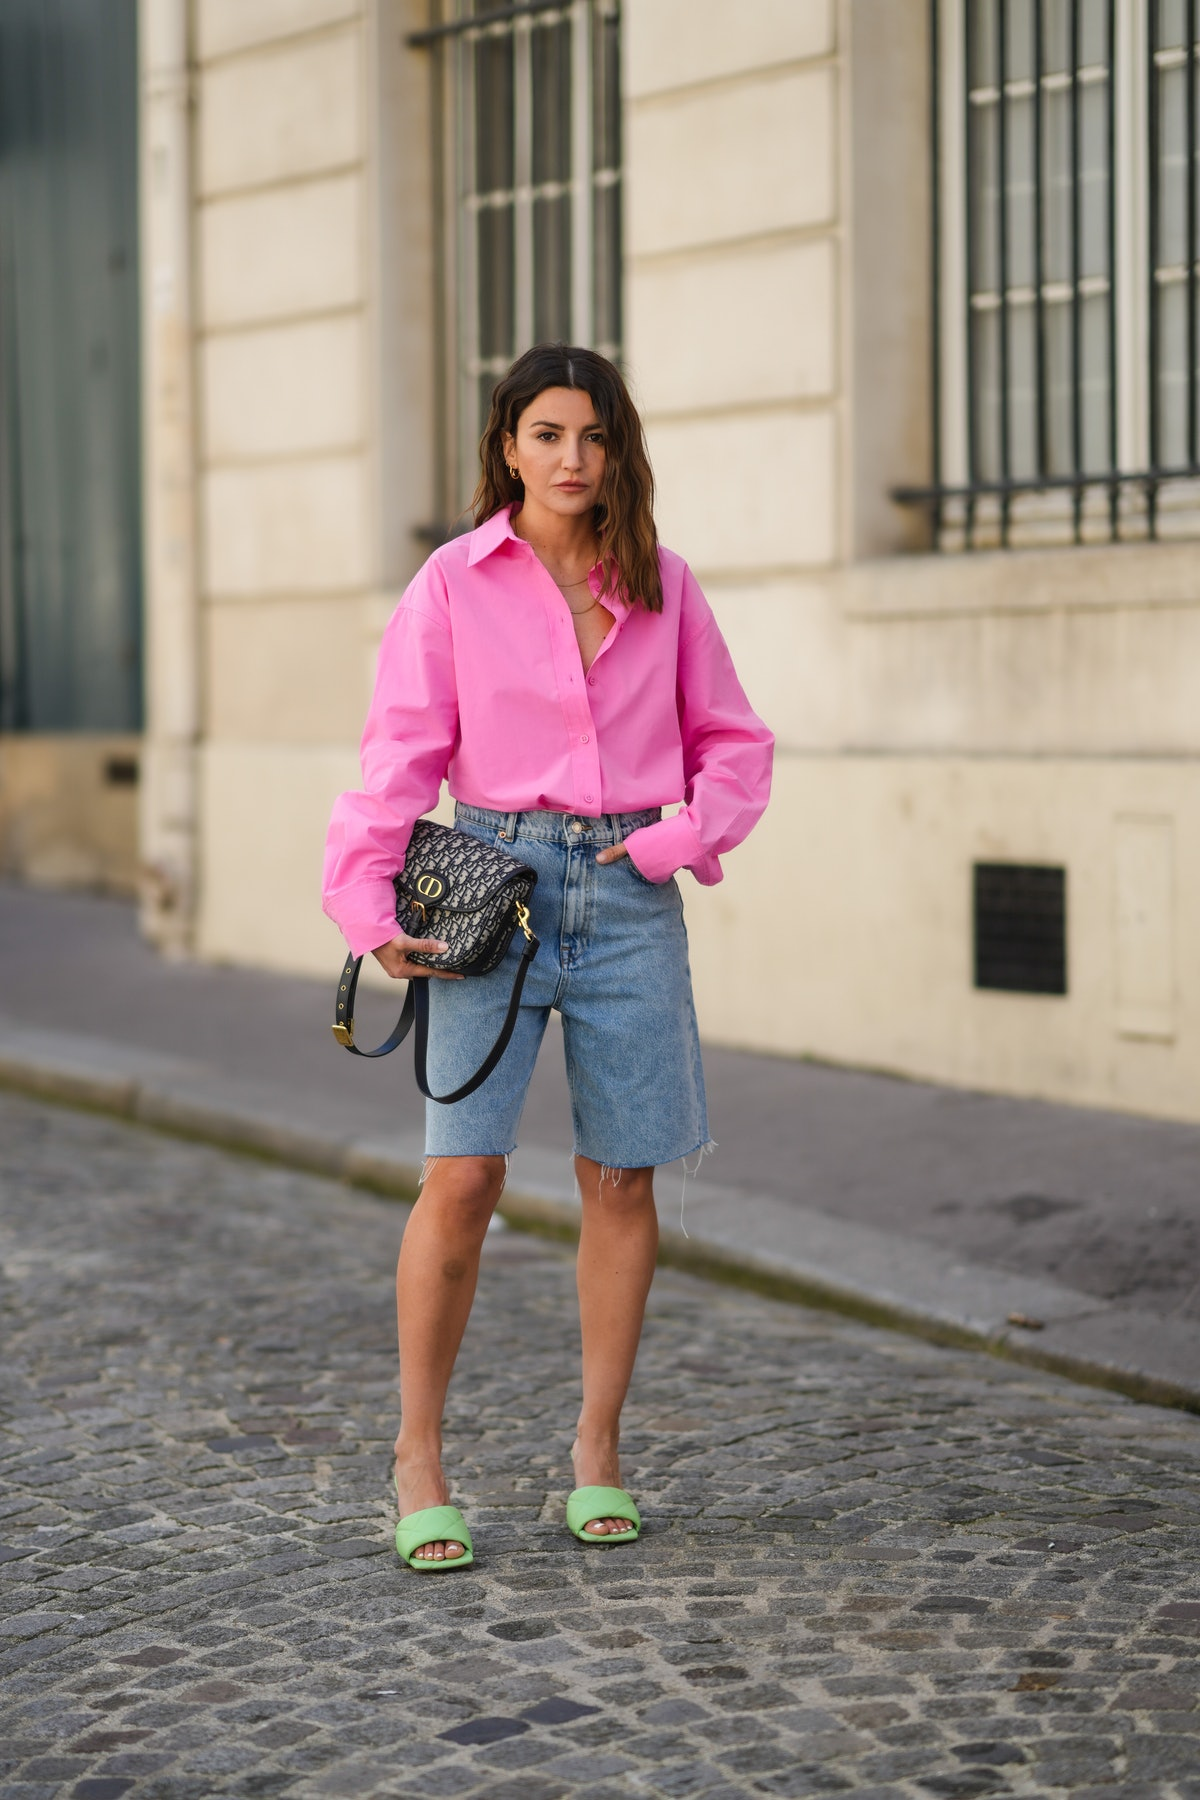 PARIS, FRANCE - APRIL 26: Alexandra Pereira wears a neon pink open oversized shirt from The Frankie ...